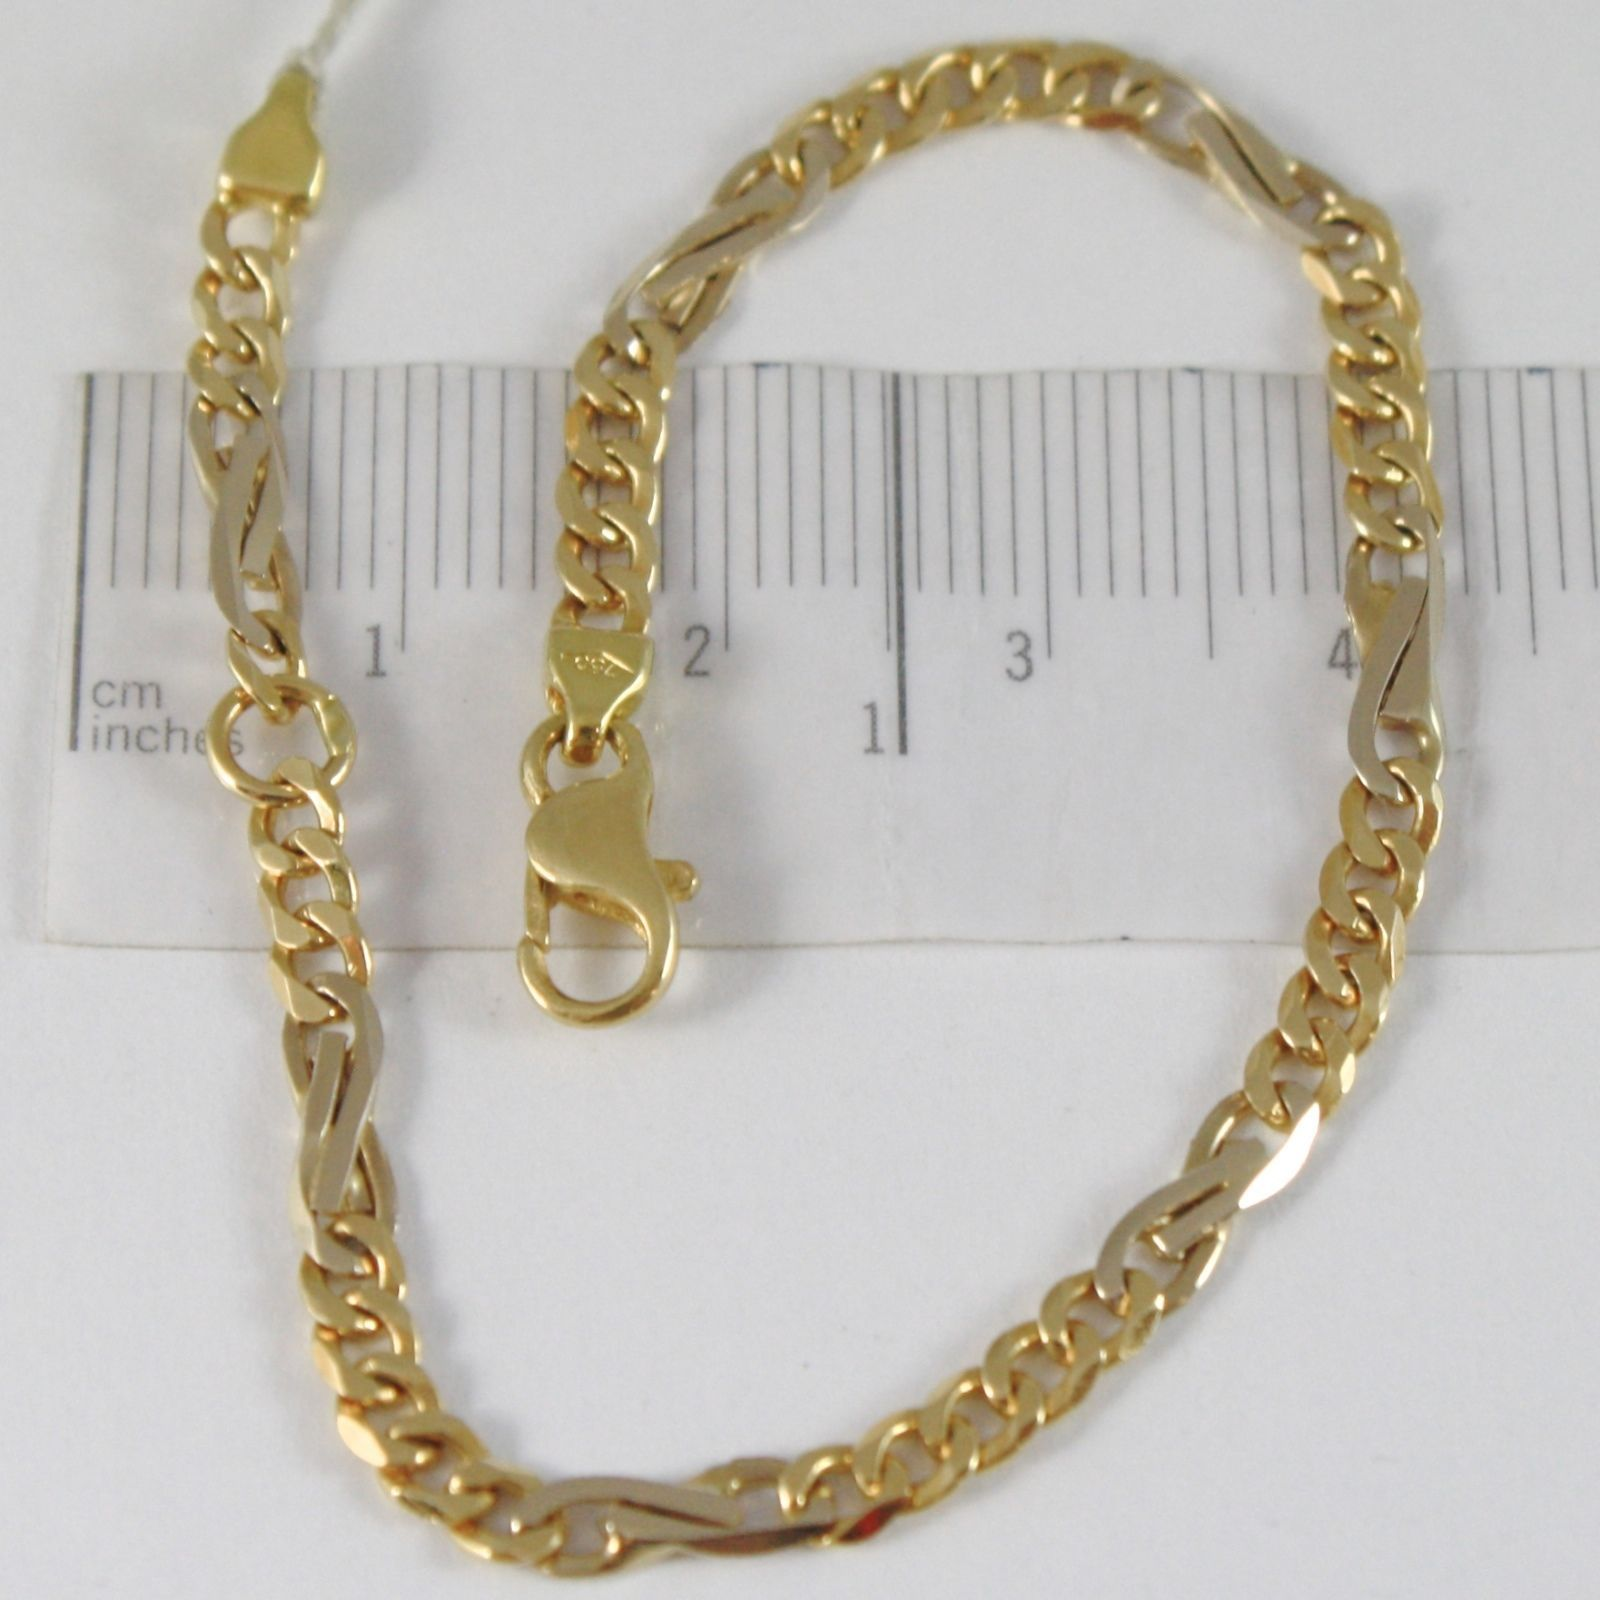 BRACELET YELLOW GOLD WHITE 750 18K, GRUMETTA ROUNDED AND INFINITY 16.5 CM